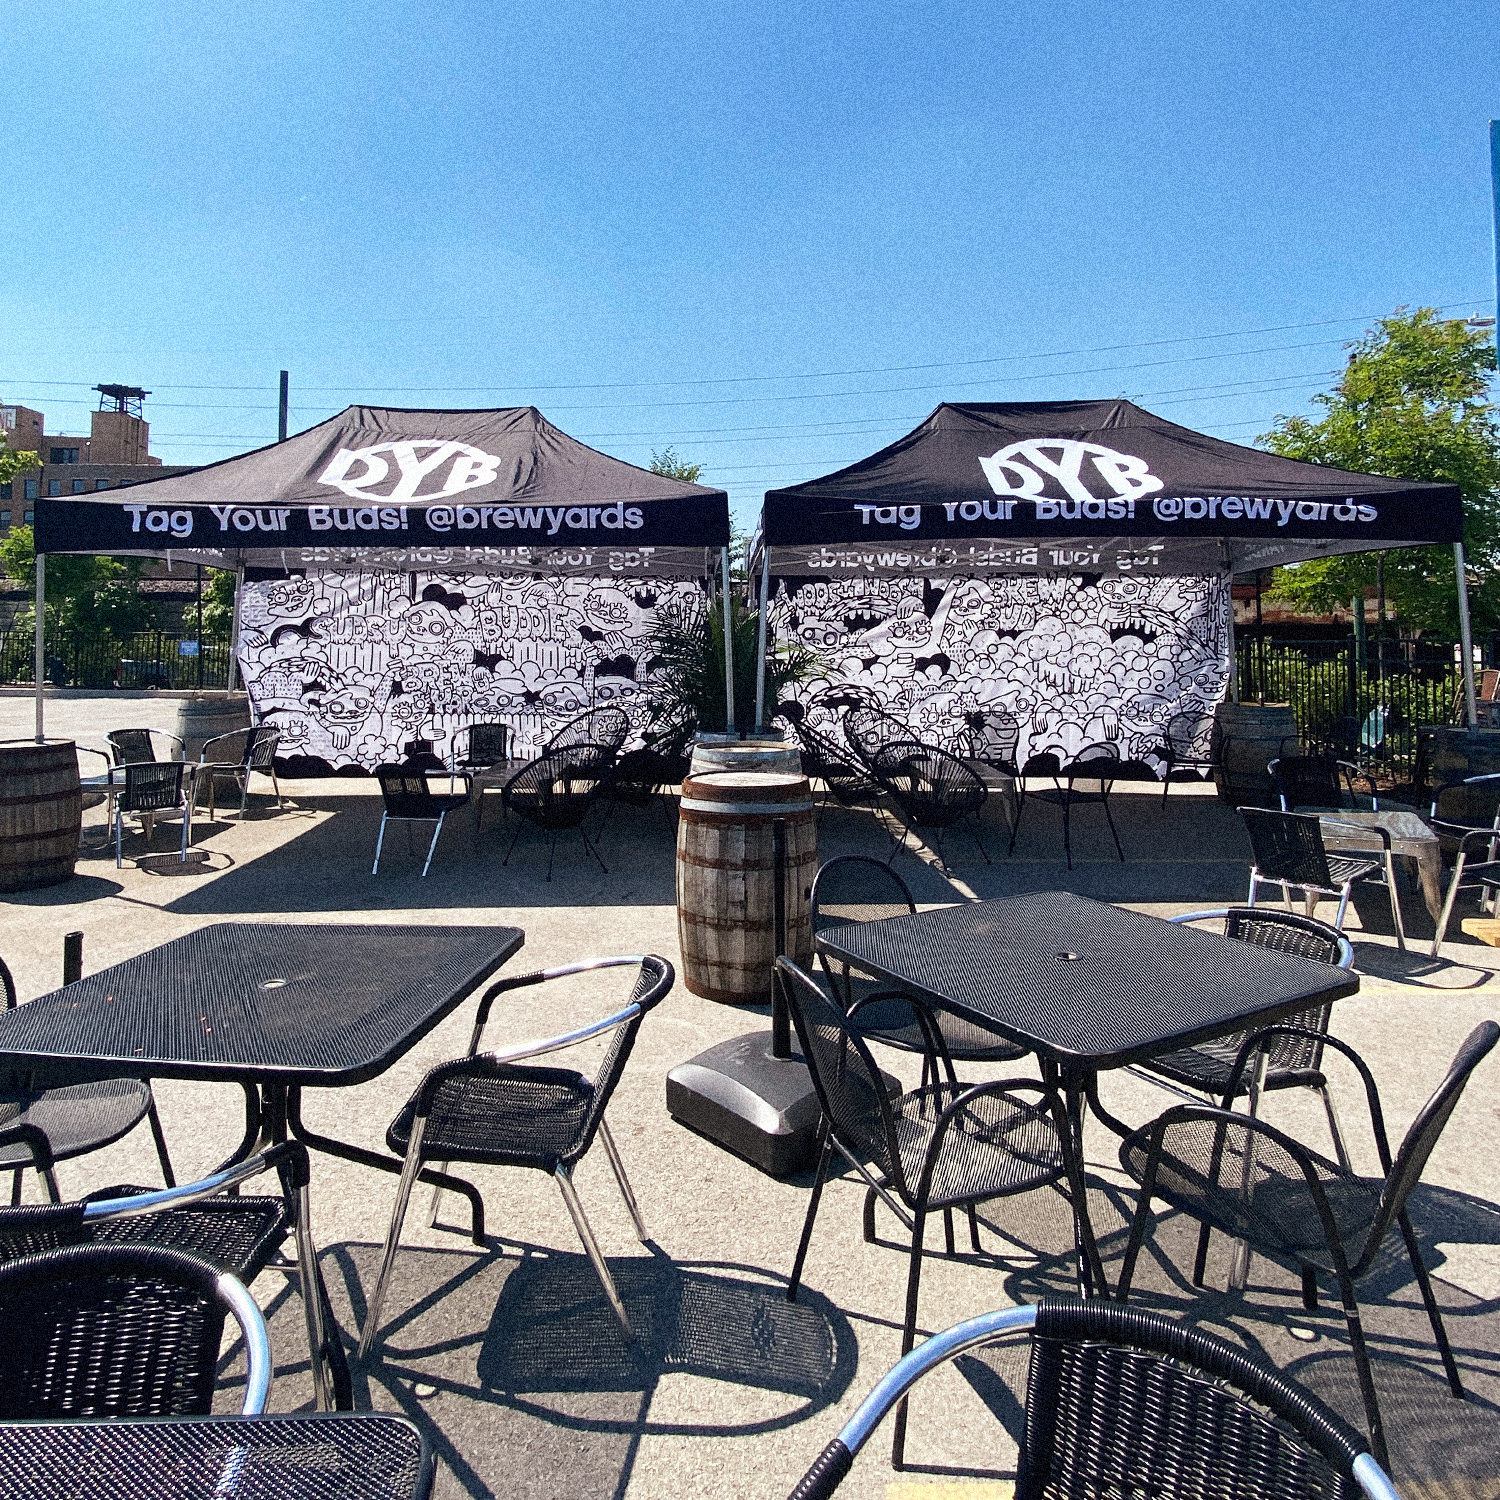 Beer Cabanas for rent on the DBY patio